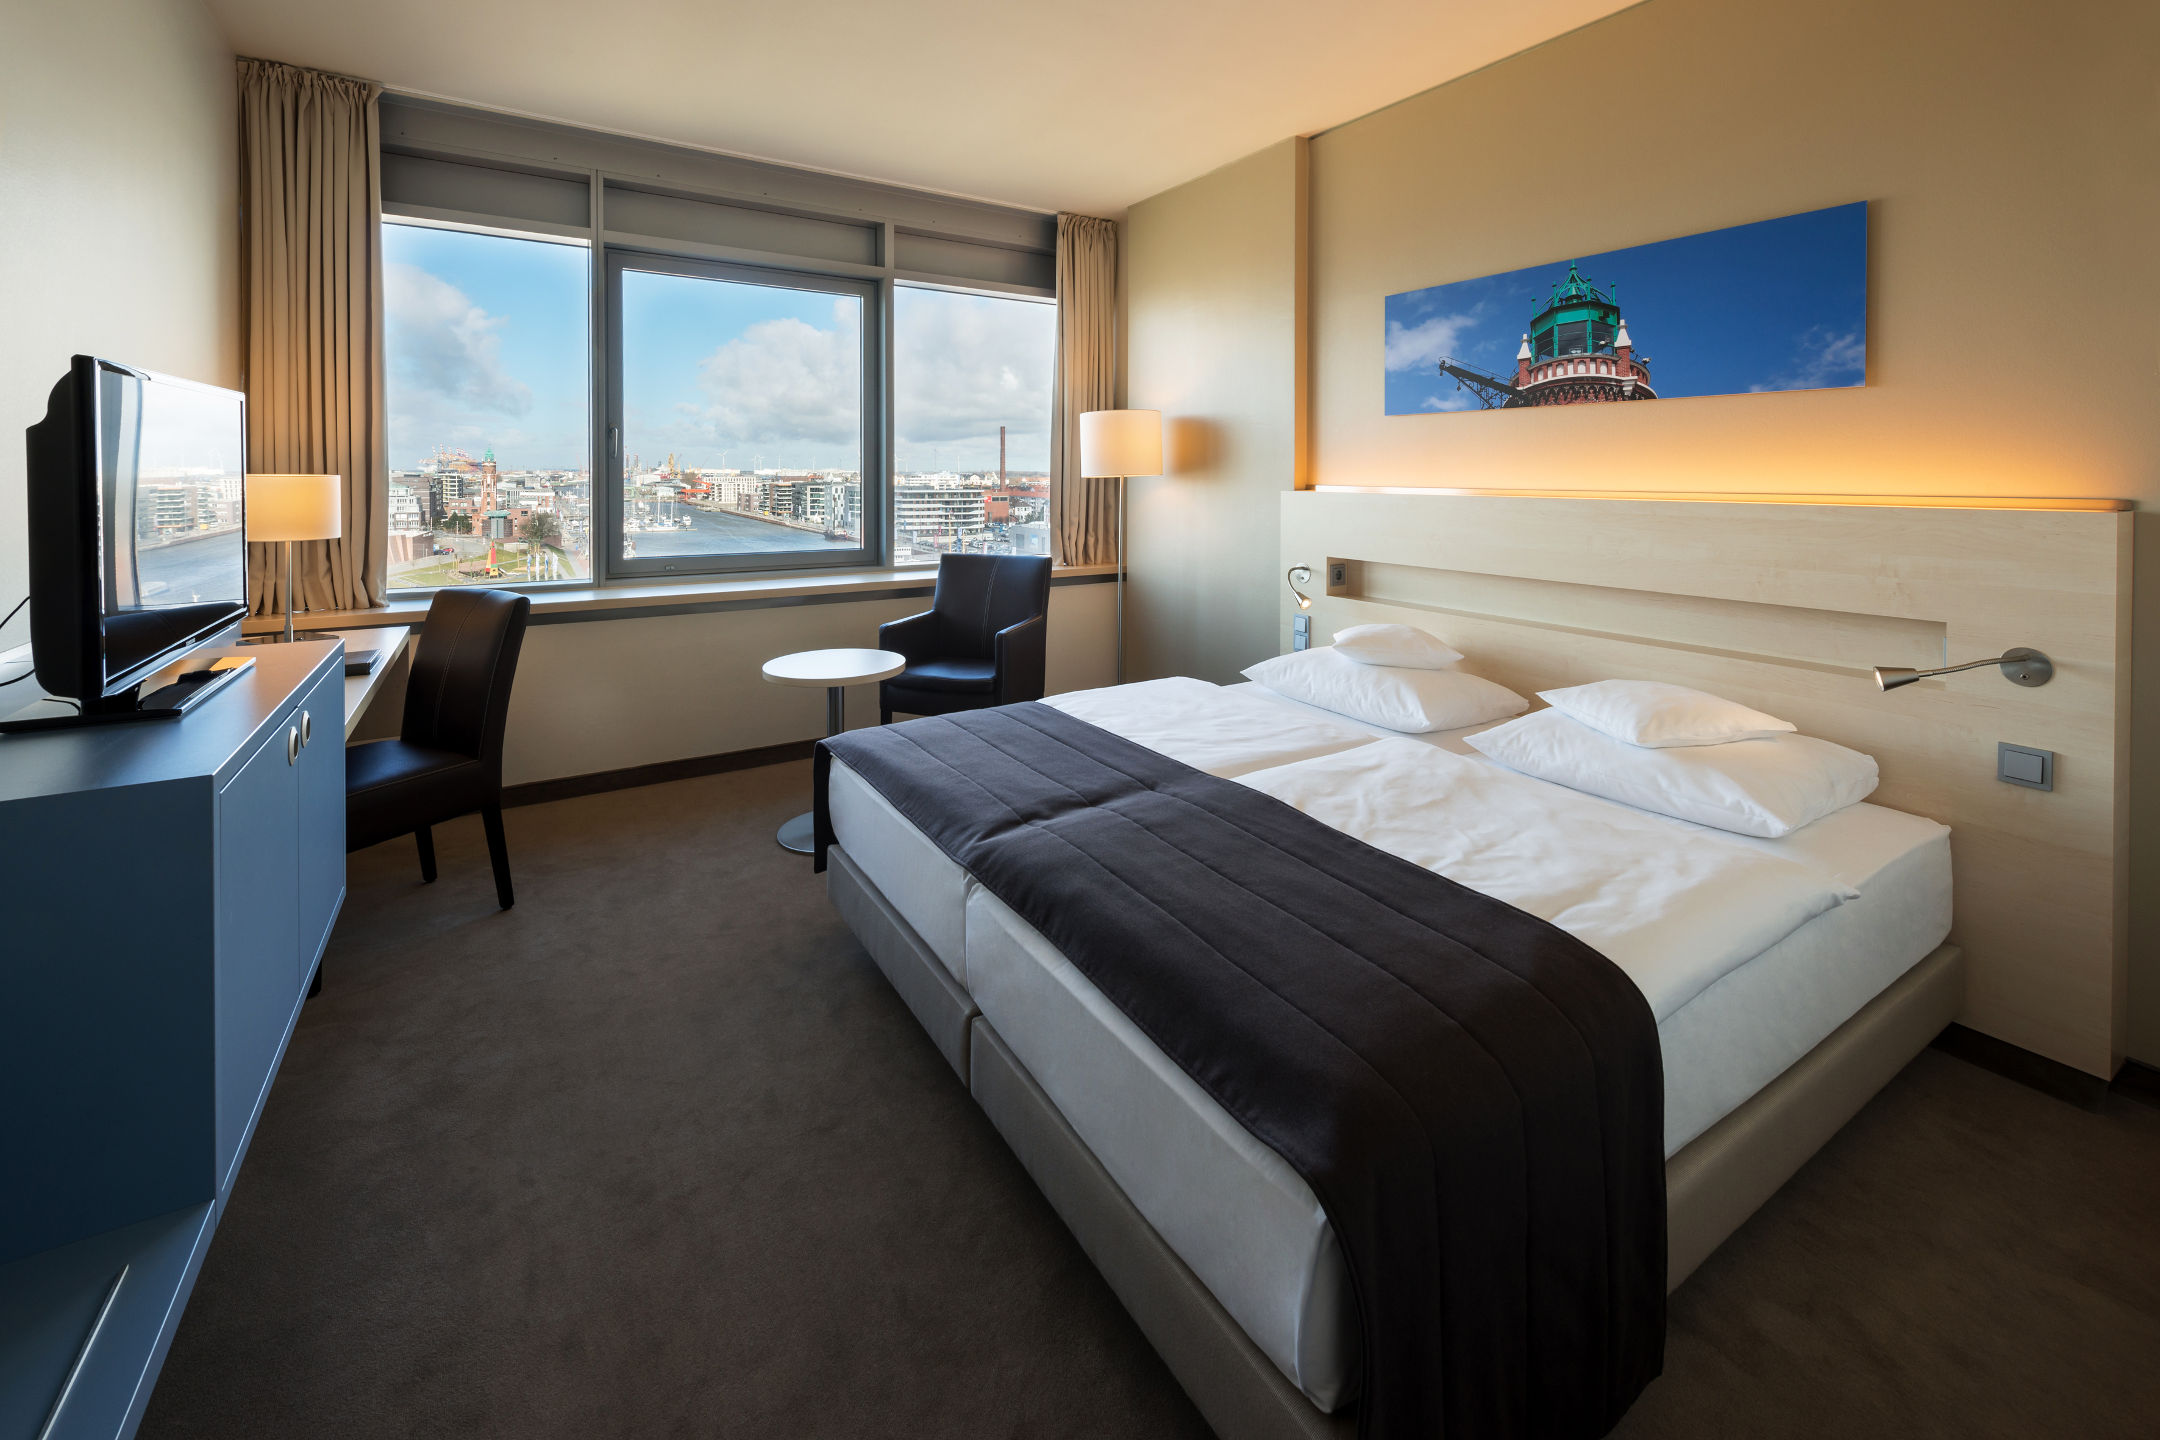 Superior Room in the ATLANTIC Hotel SAIL City in Bremerhaven